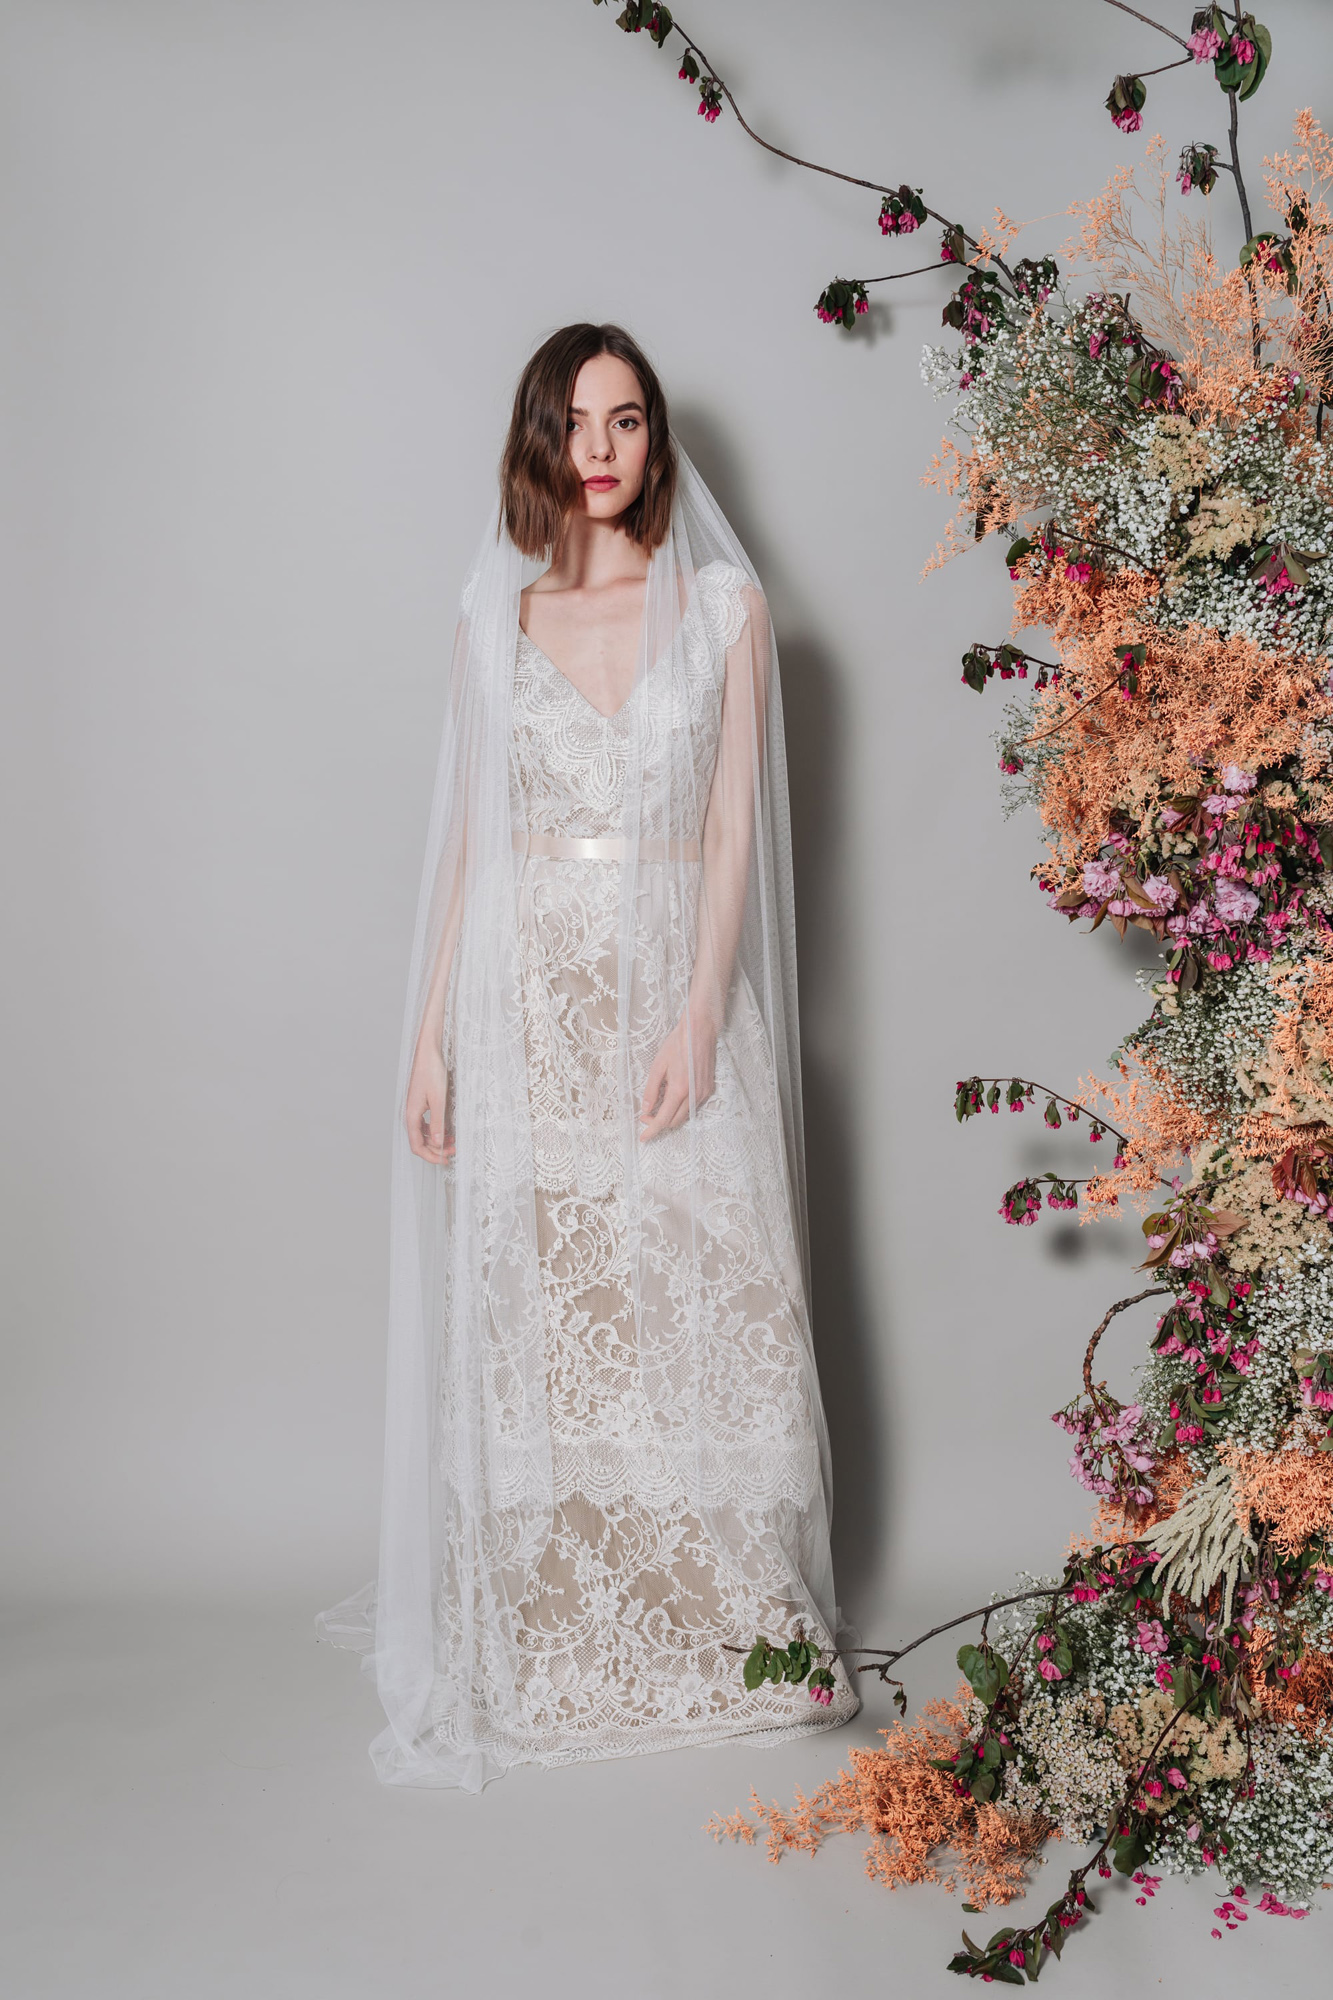 Kate-Beaumont-Sheffield-Wild-Lupin-Bohemian-Lace-Wedding-Gown-Tiered-Skirt-12.jpg